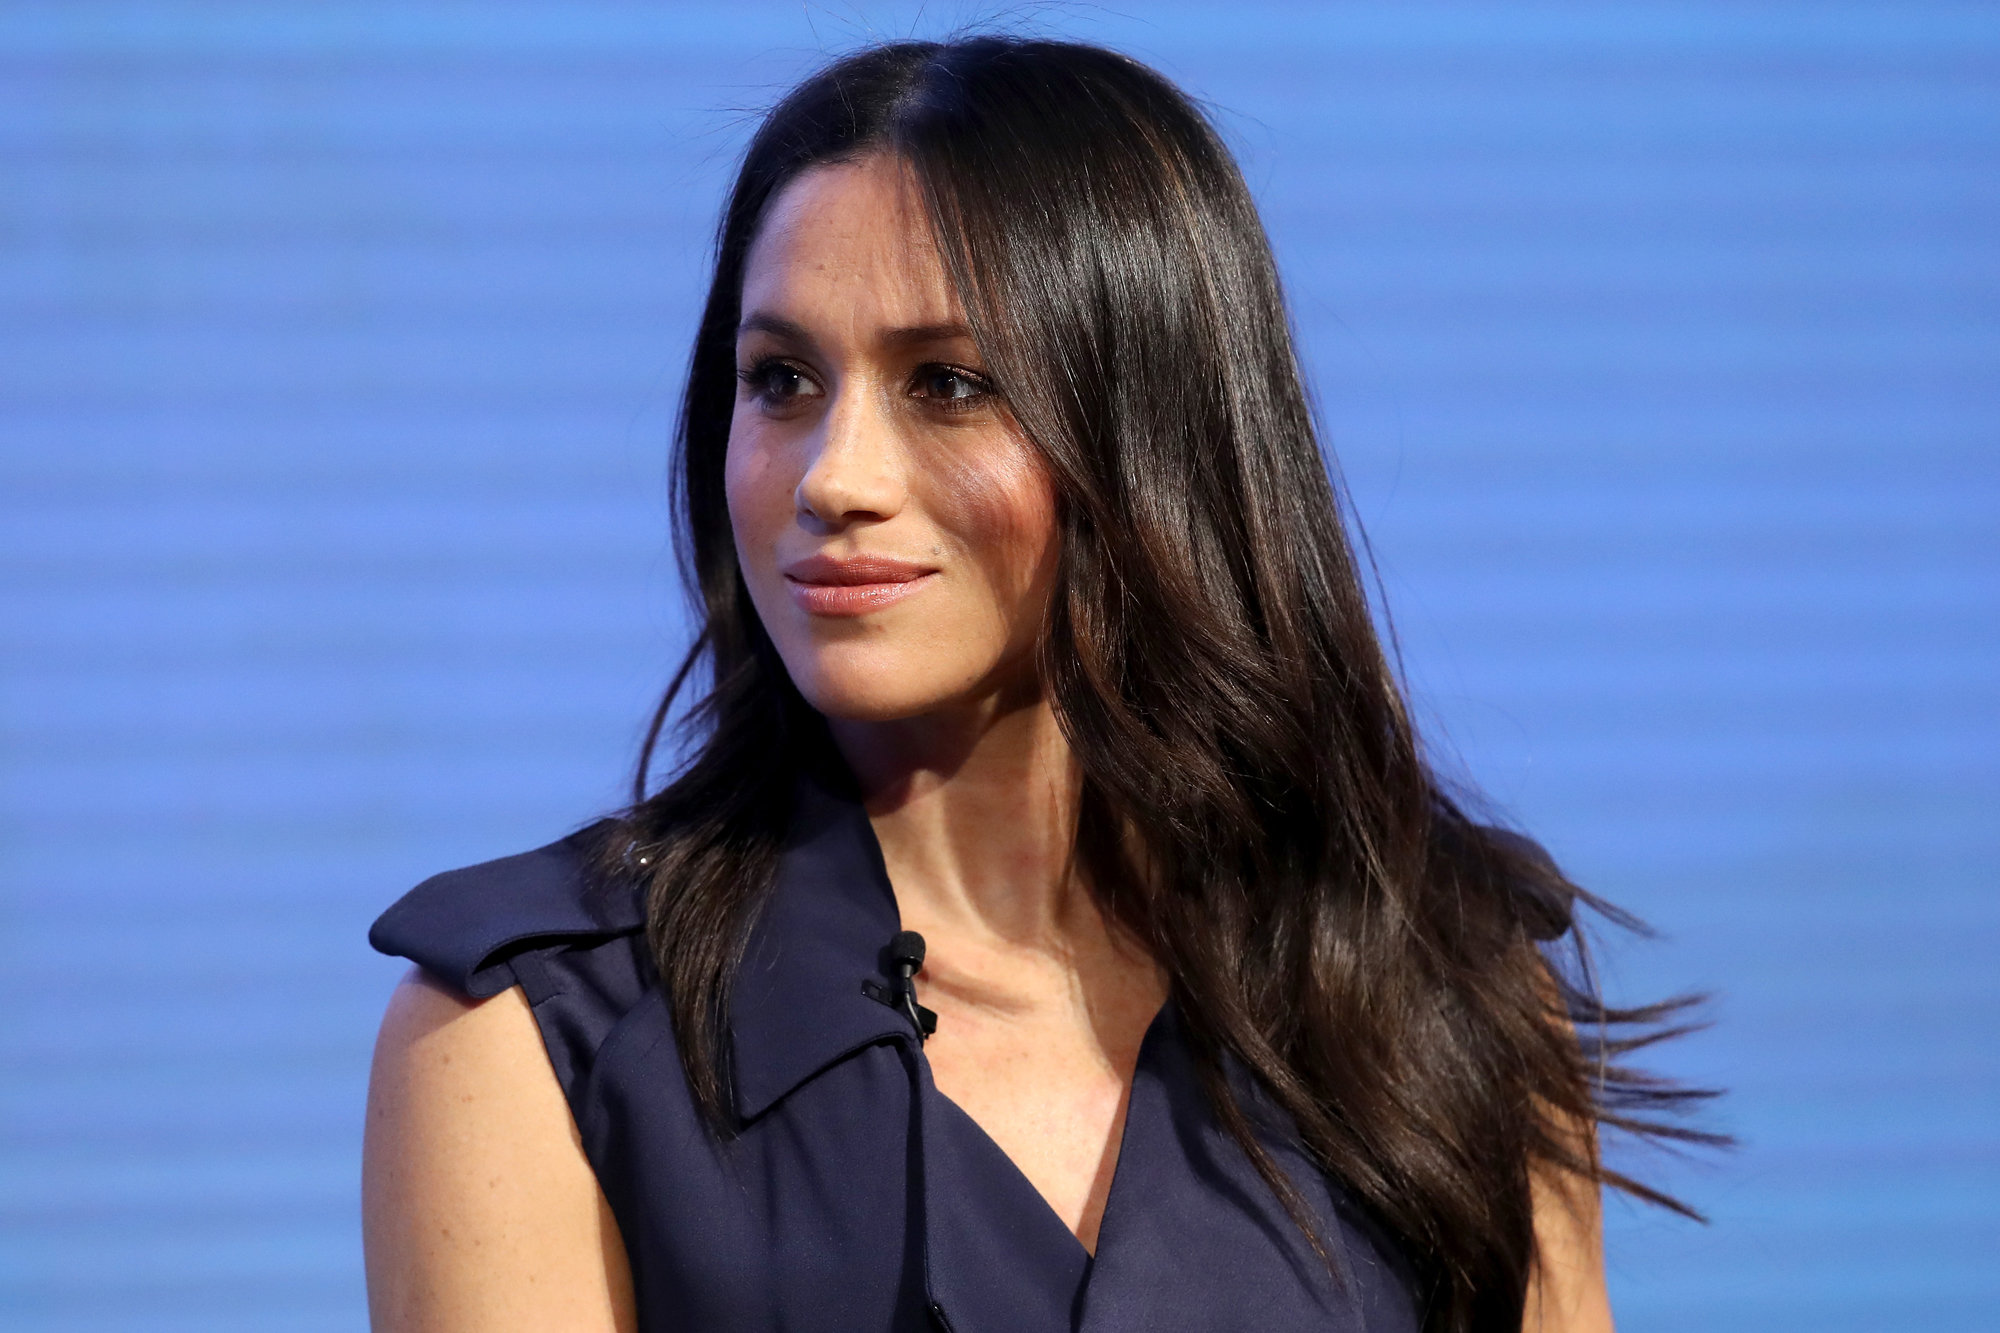 Hillary Clinton Seems Show Her Support for Meghan Markle